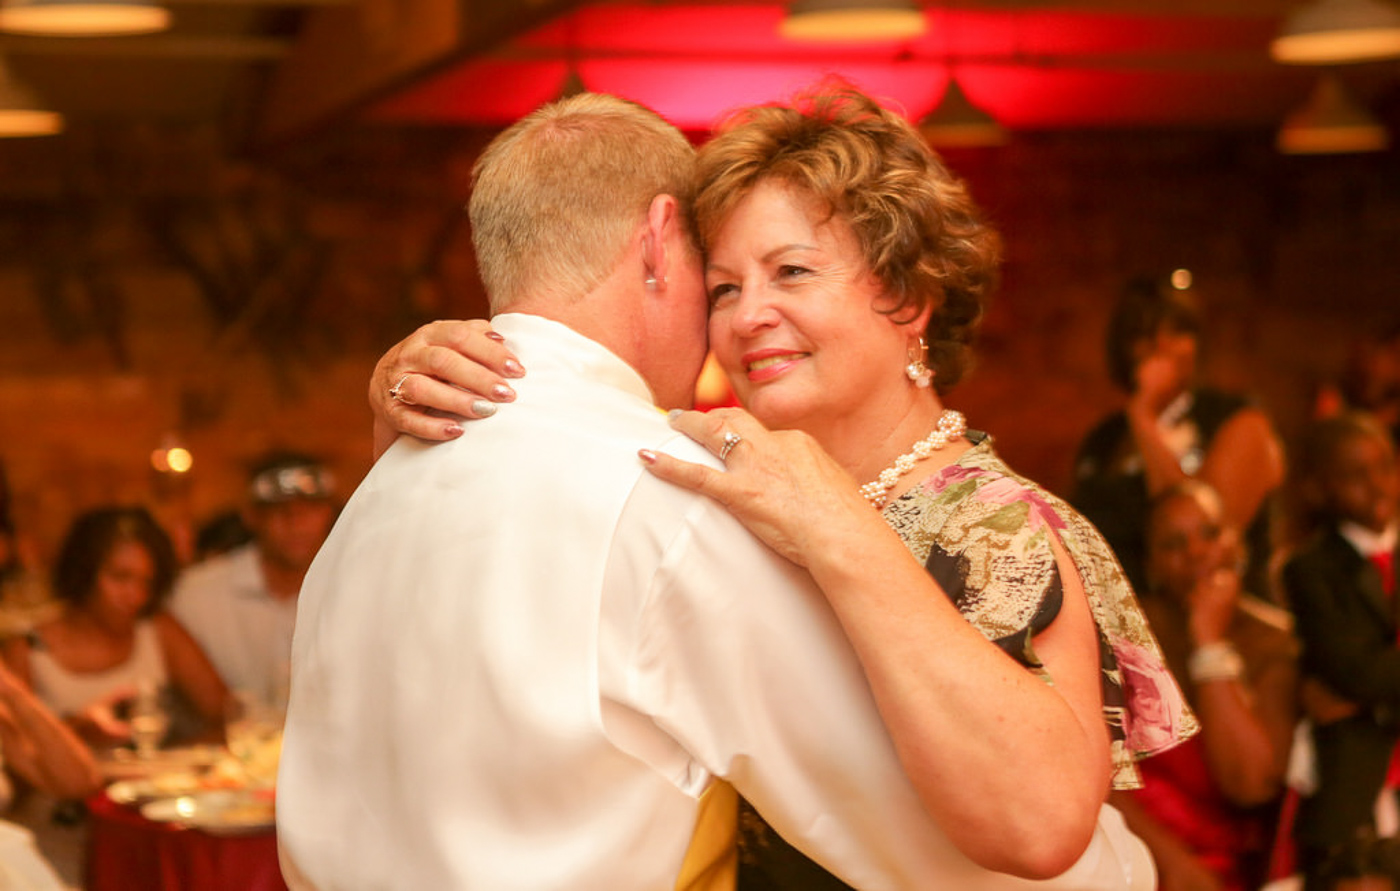 Mother son dance at wedding reception at orange county mining co